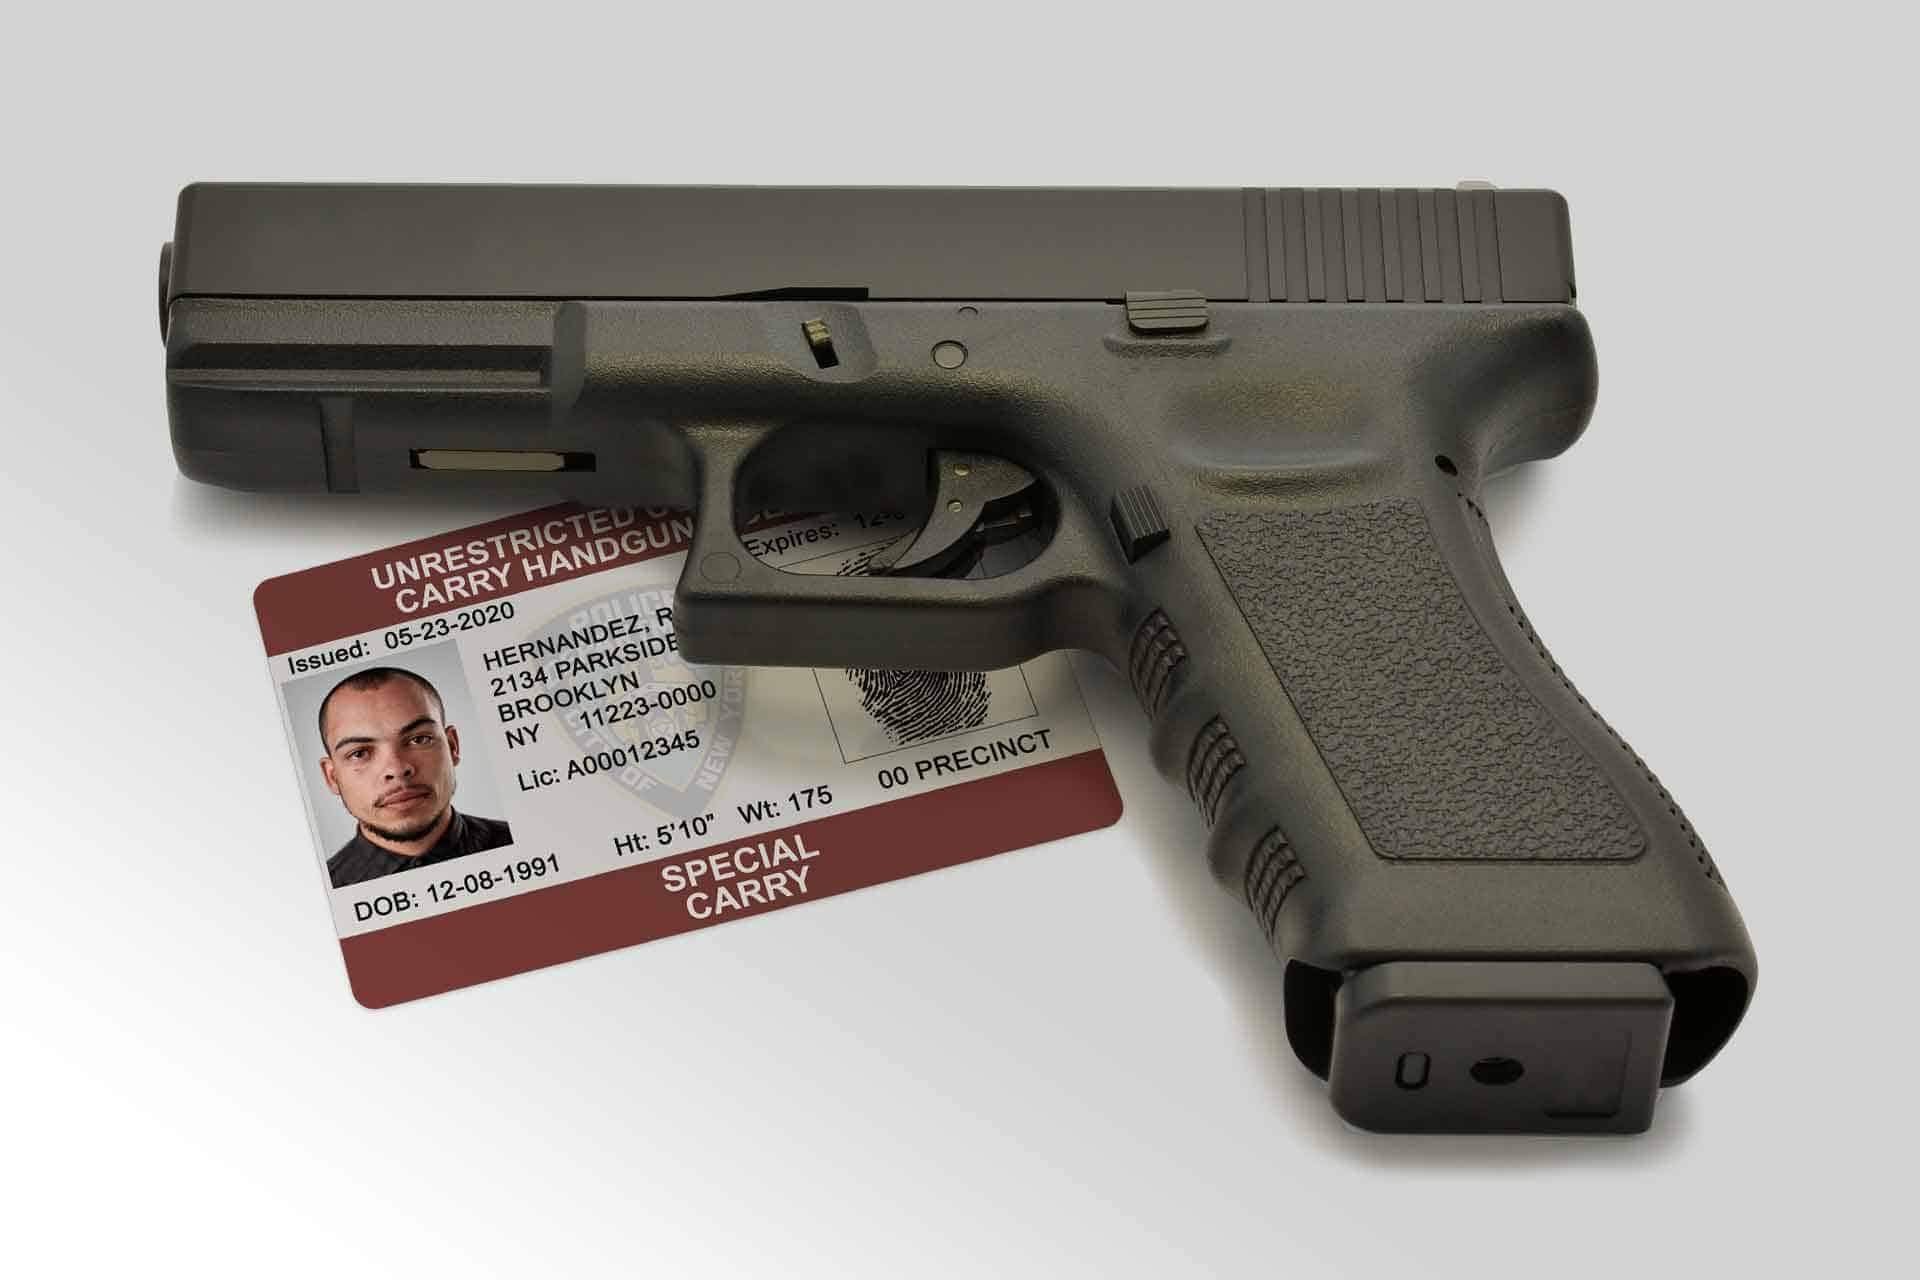 New York carry handgun permit and a hand gun